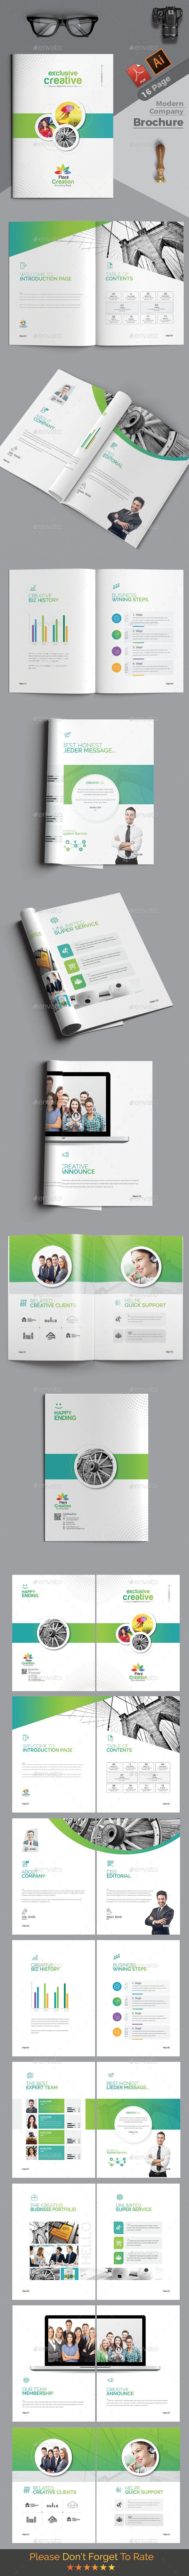 Brochure #creative brochure #agency brochure • Download ➝ https://graphicriver.net/item/brochure/21216123?ref=pxcr